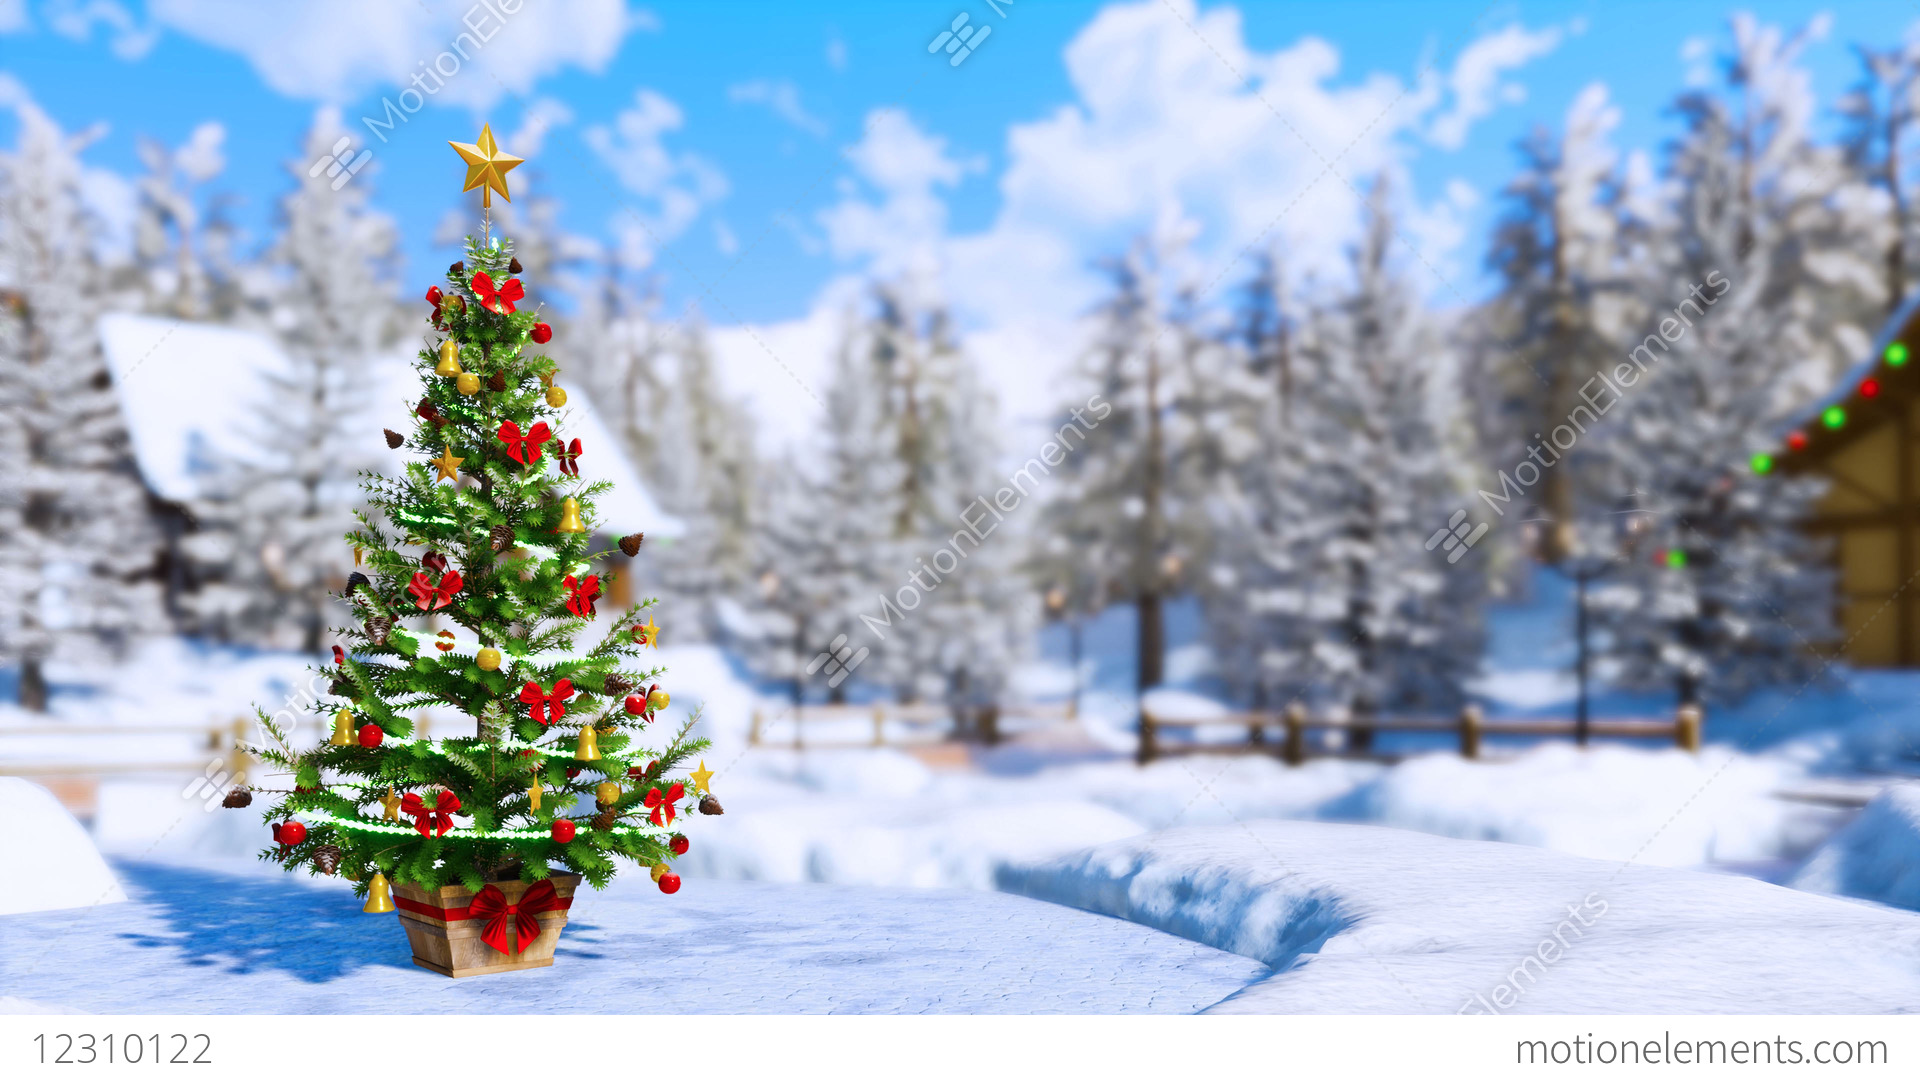 Outdoor Christmas Tree On Blurred Winter Landscape Background Stock